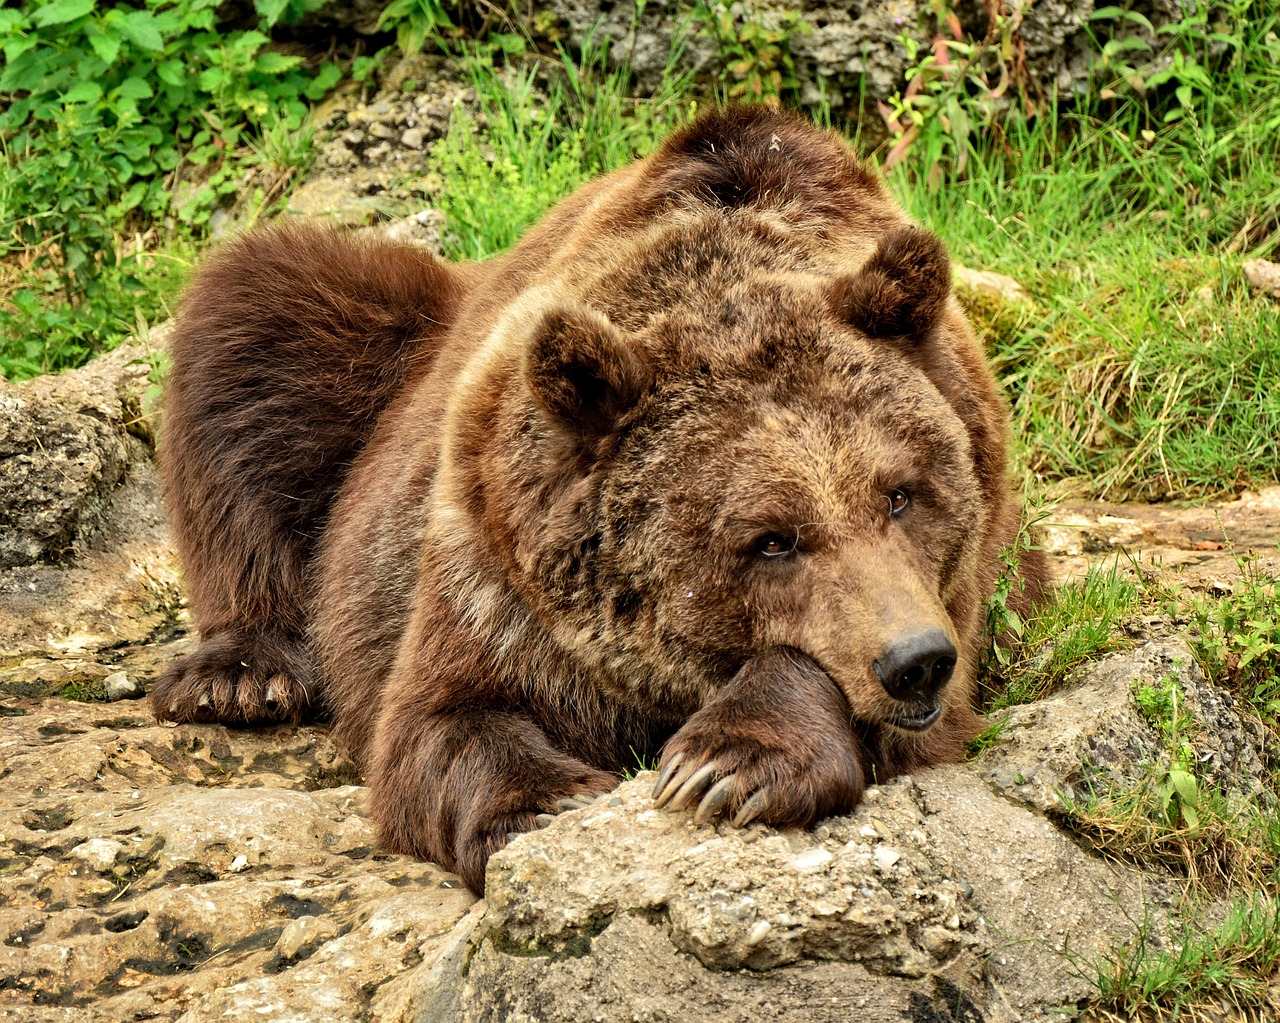 Local authorities have insisted the bears will not be killed (Source: Pixabay)